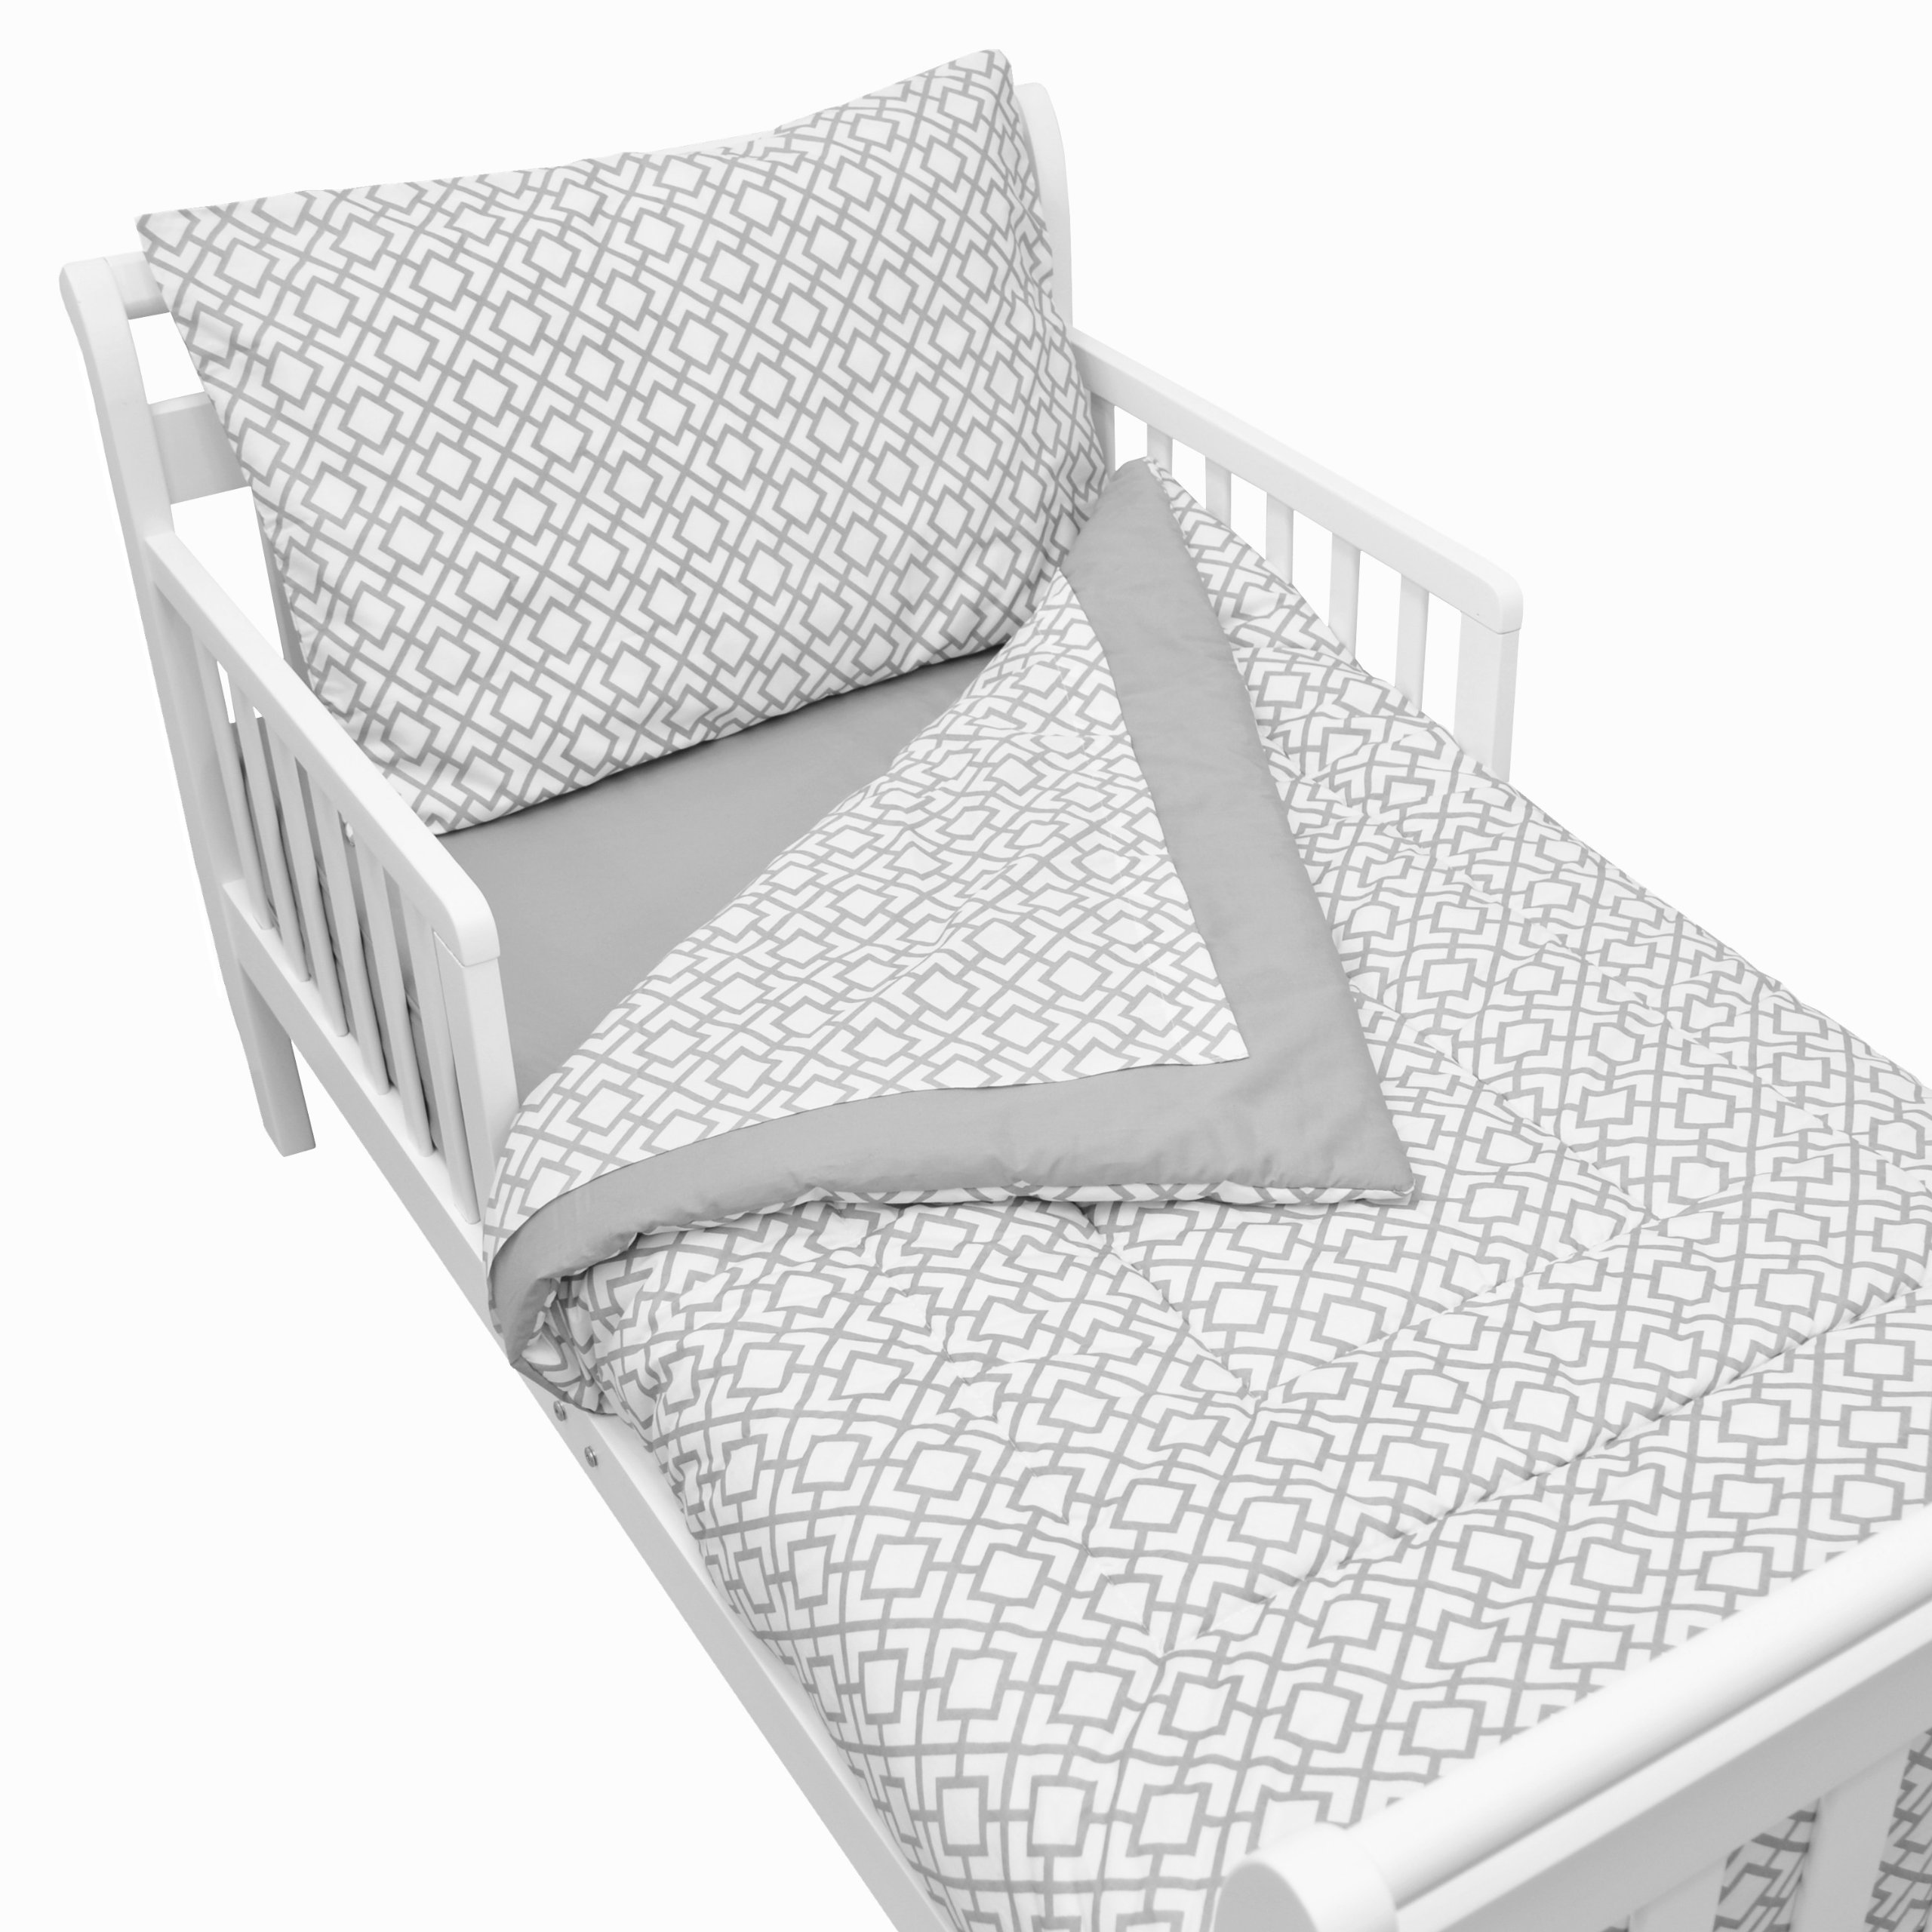 American Baby Company 100% Cotton Percale 4-Piece Toddler Bedding Set, Gray Lattice, for Boys and Girls by American Baby Company